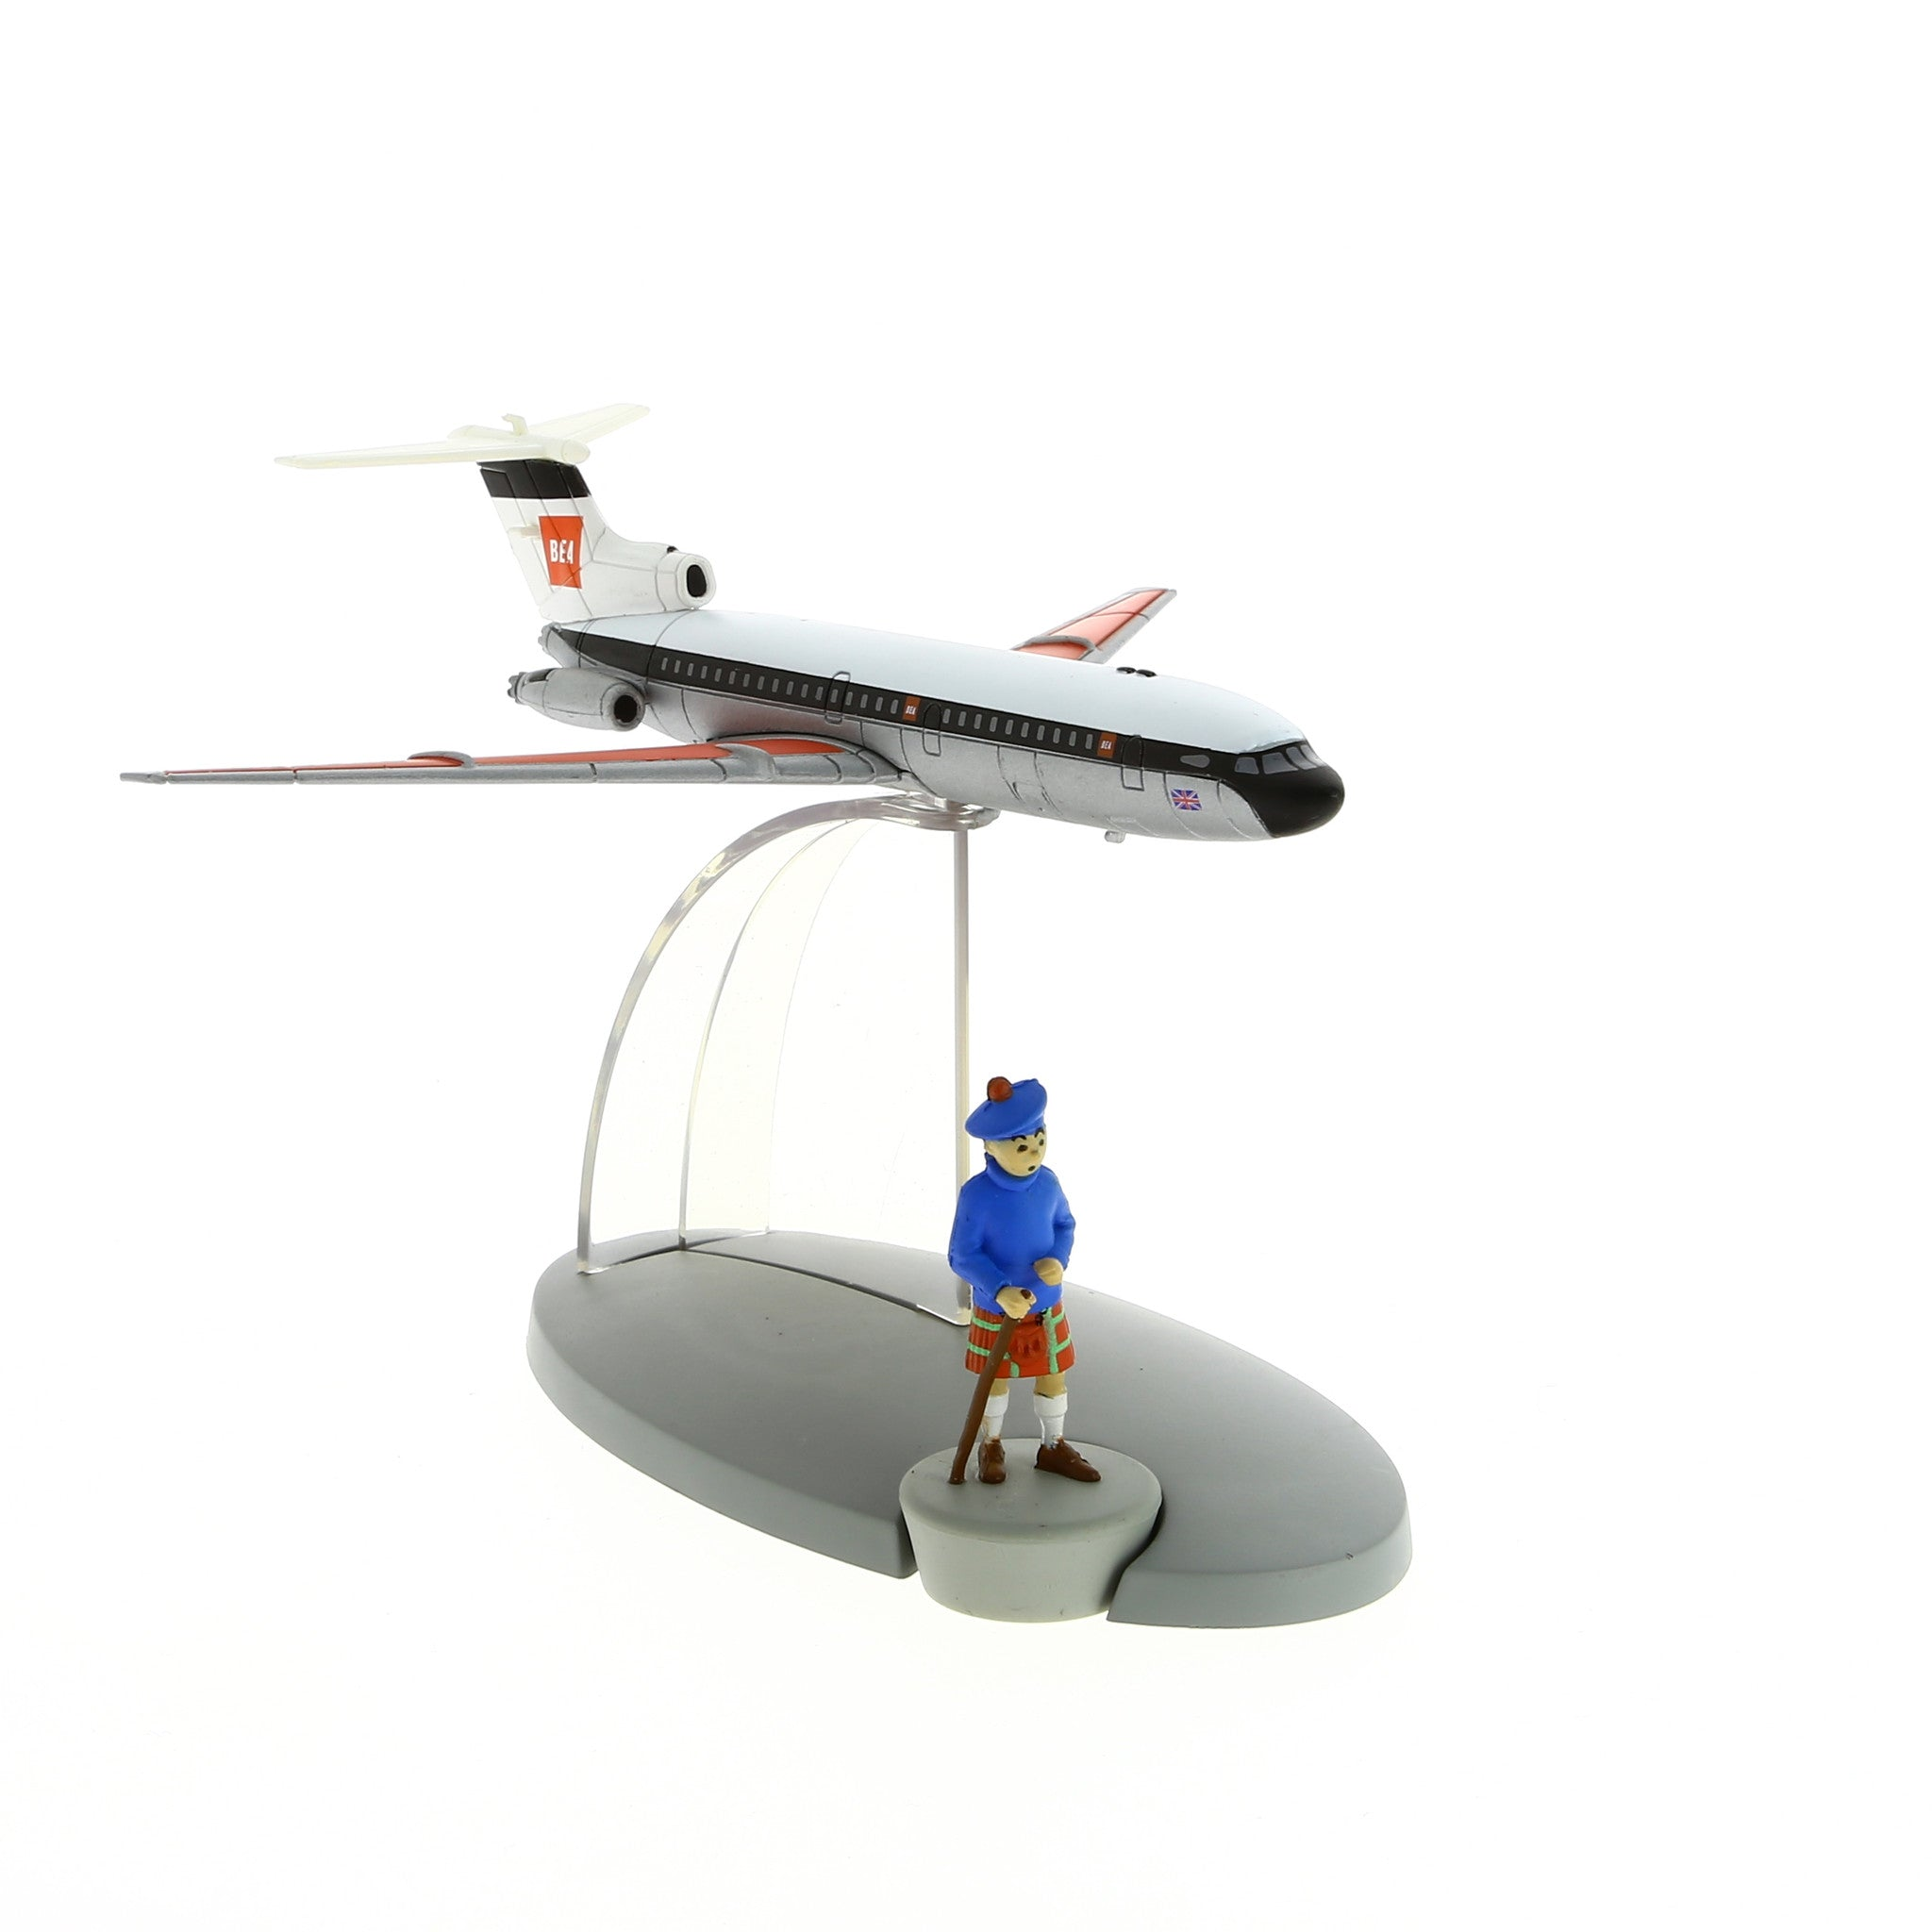 AIRCRAFT TINTIN: British European Airways Plane #39